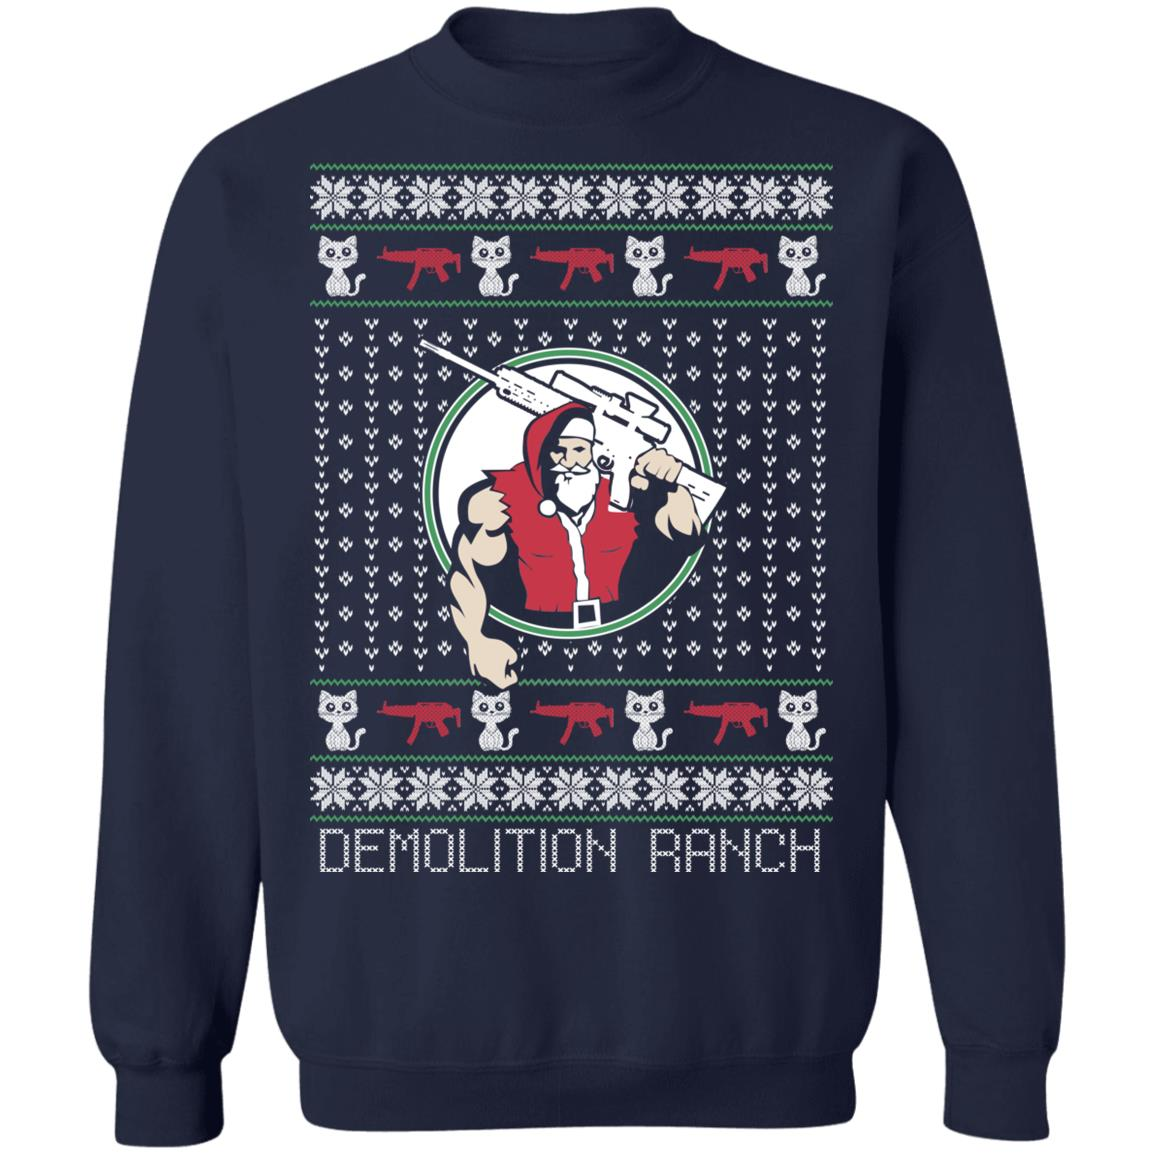 Demolition Ranch Christmas Sweater Ultra Cotton Shirt